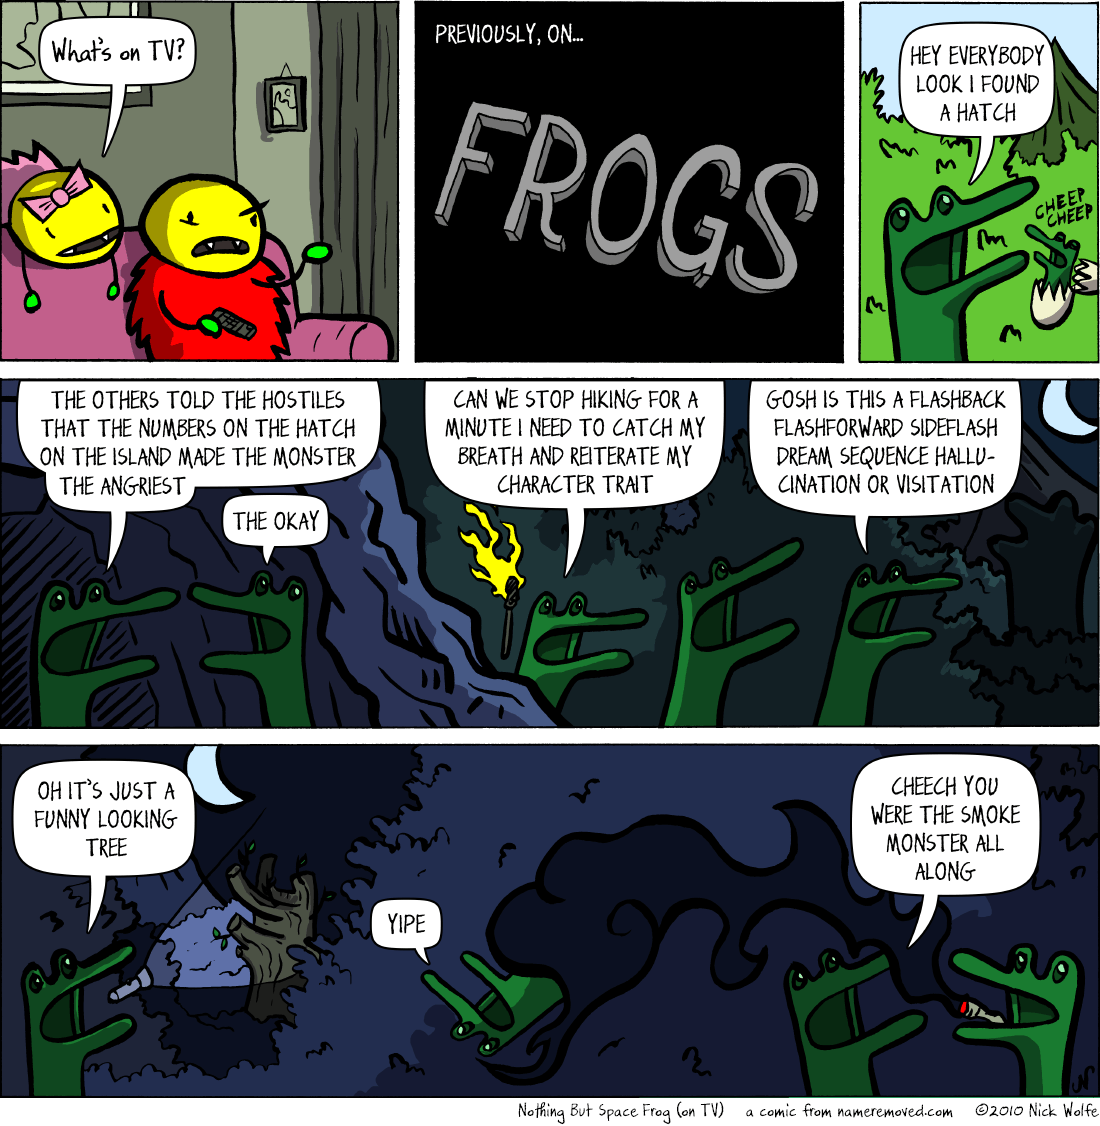 Nothing But Space Frog (on TV)